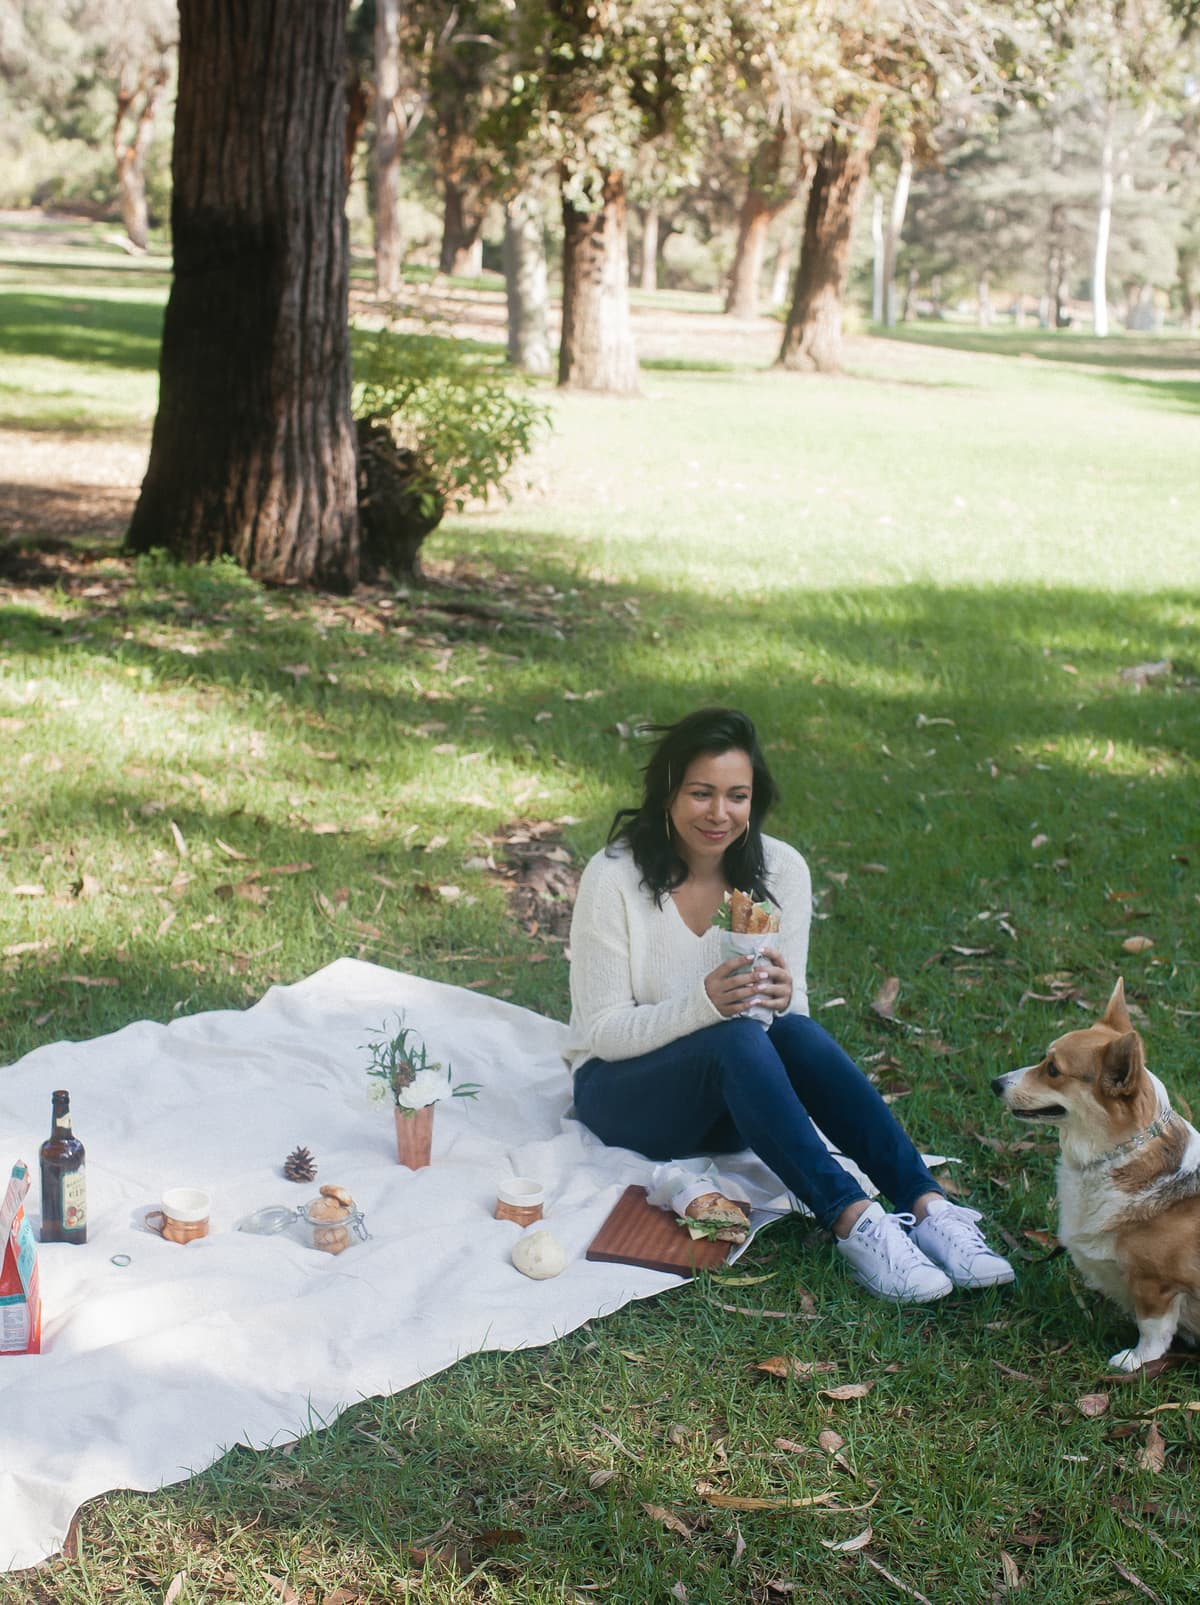 Fall Picnic with Amelia